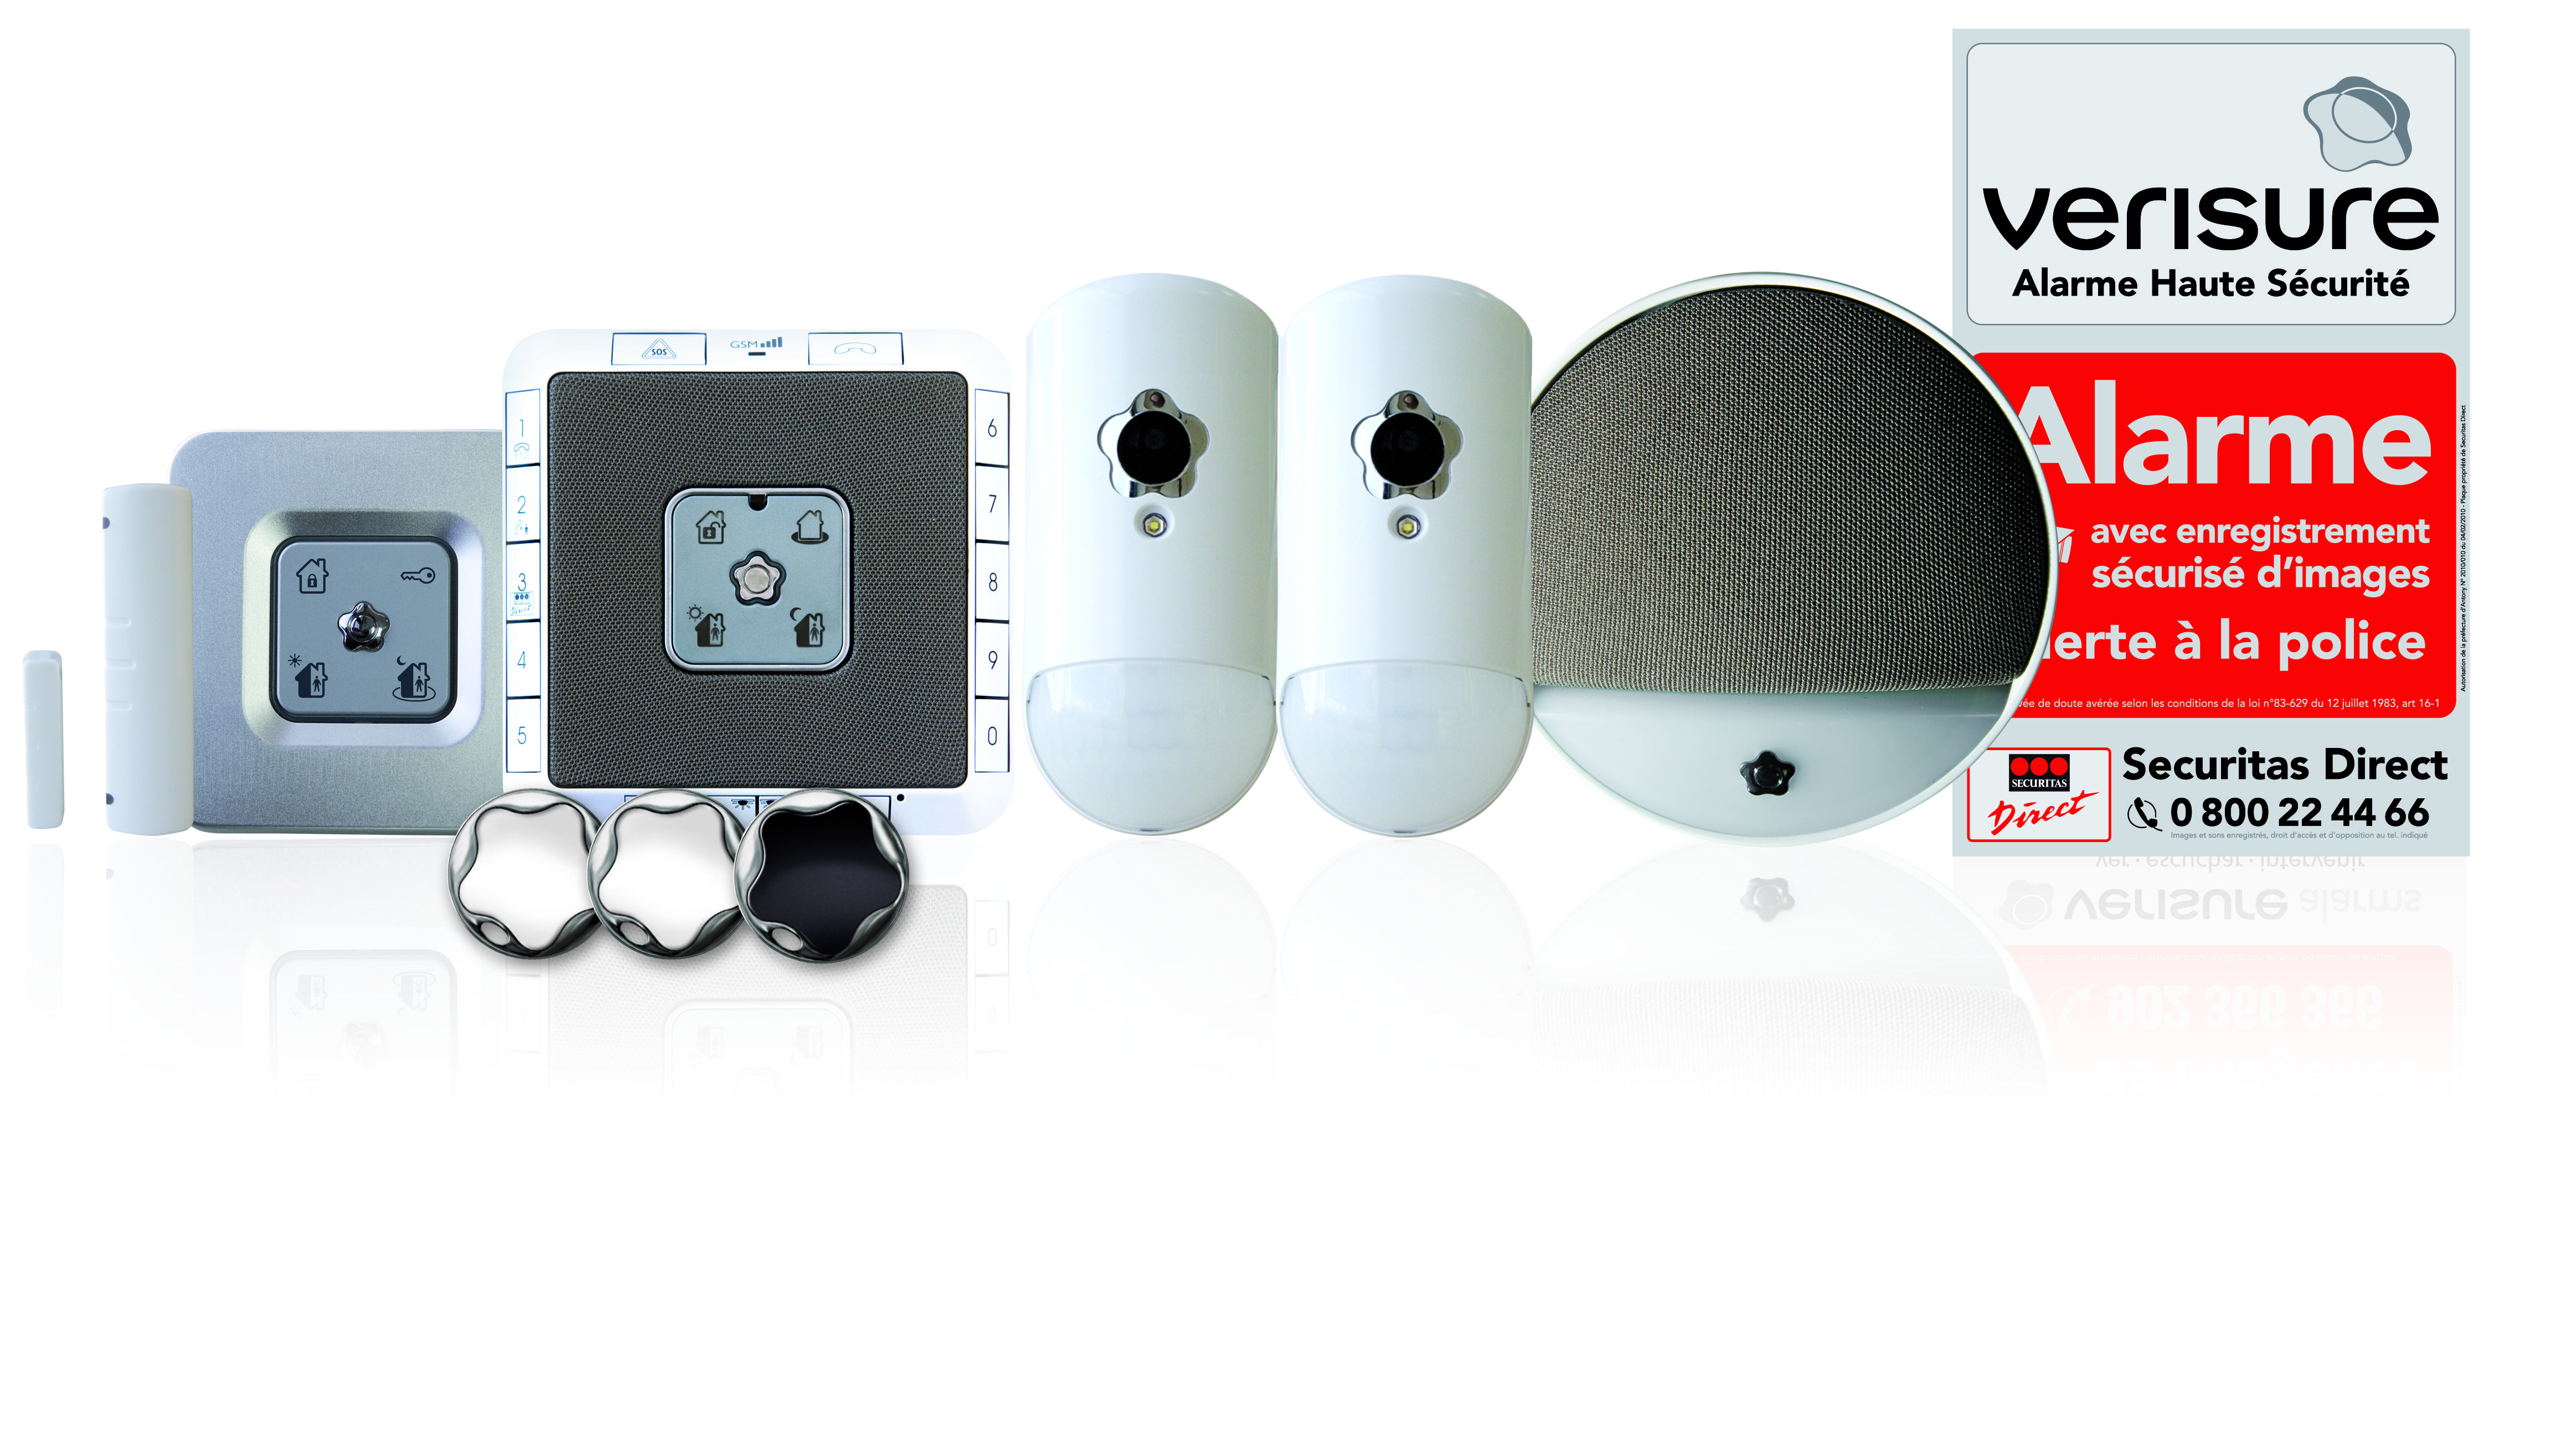 Kit t l surveillance alarme verisure securitas direct for Alarme verisure securitas direct